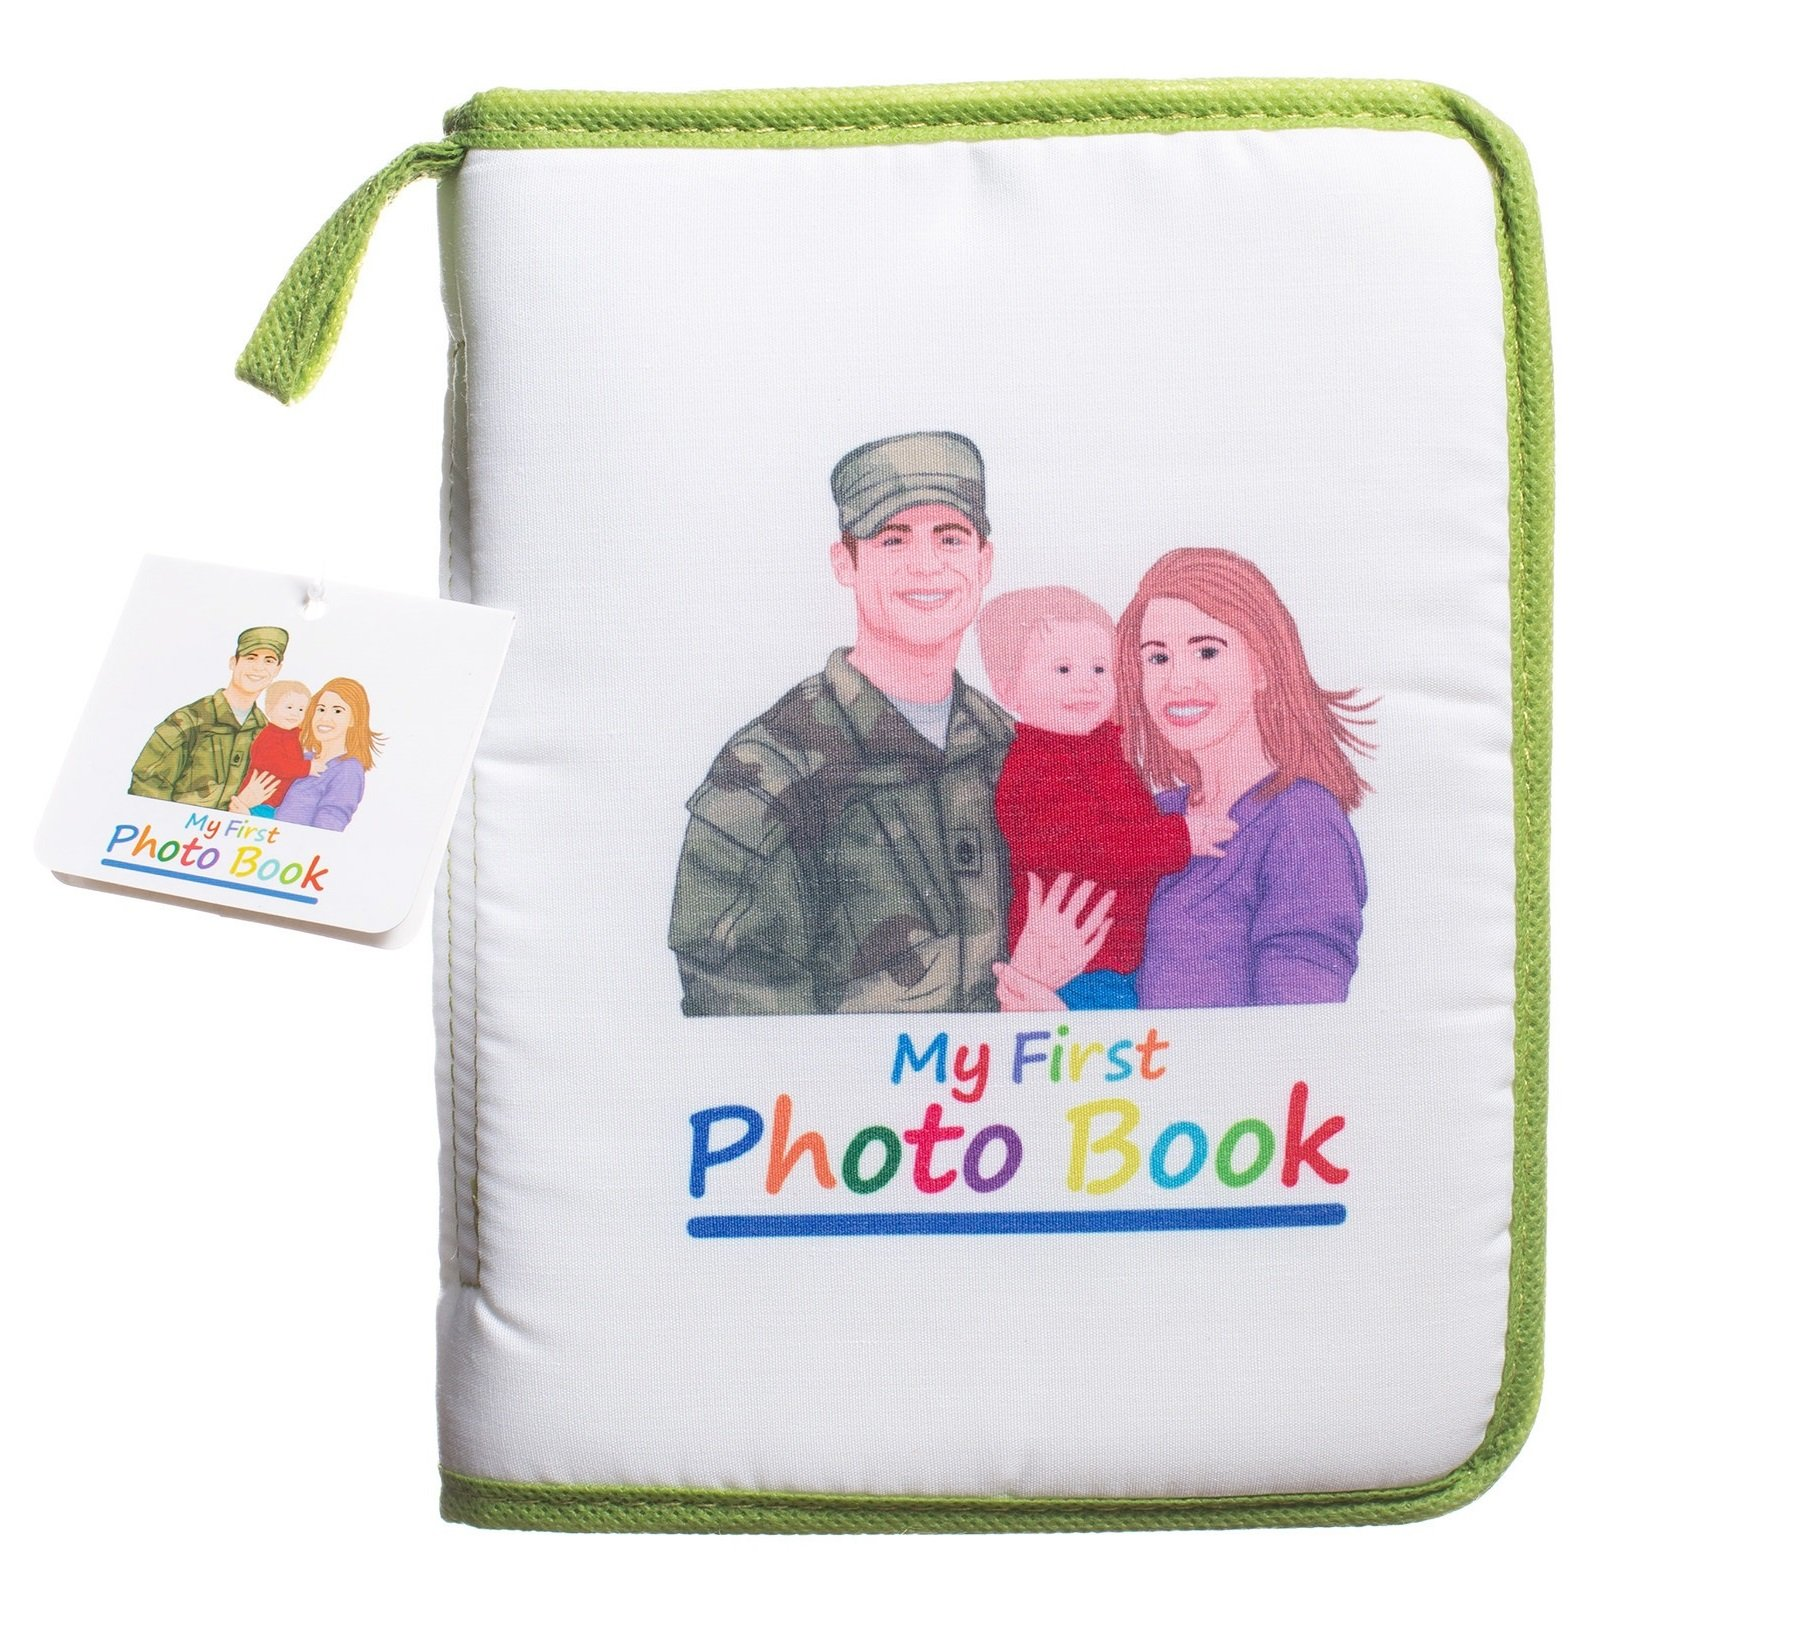 Baby Family Photo Album 4x6 (Military Edition) Portable Travel Scrapbook for Pictures, Photographs | Protective Plastic Covering | Lightweight, Compact